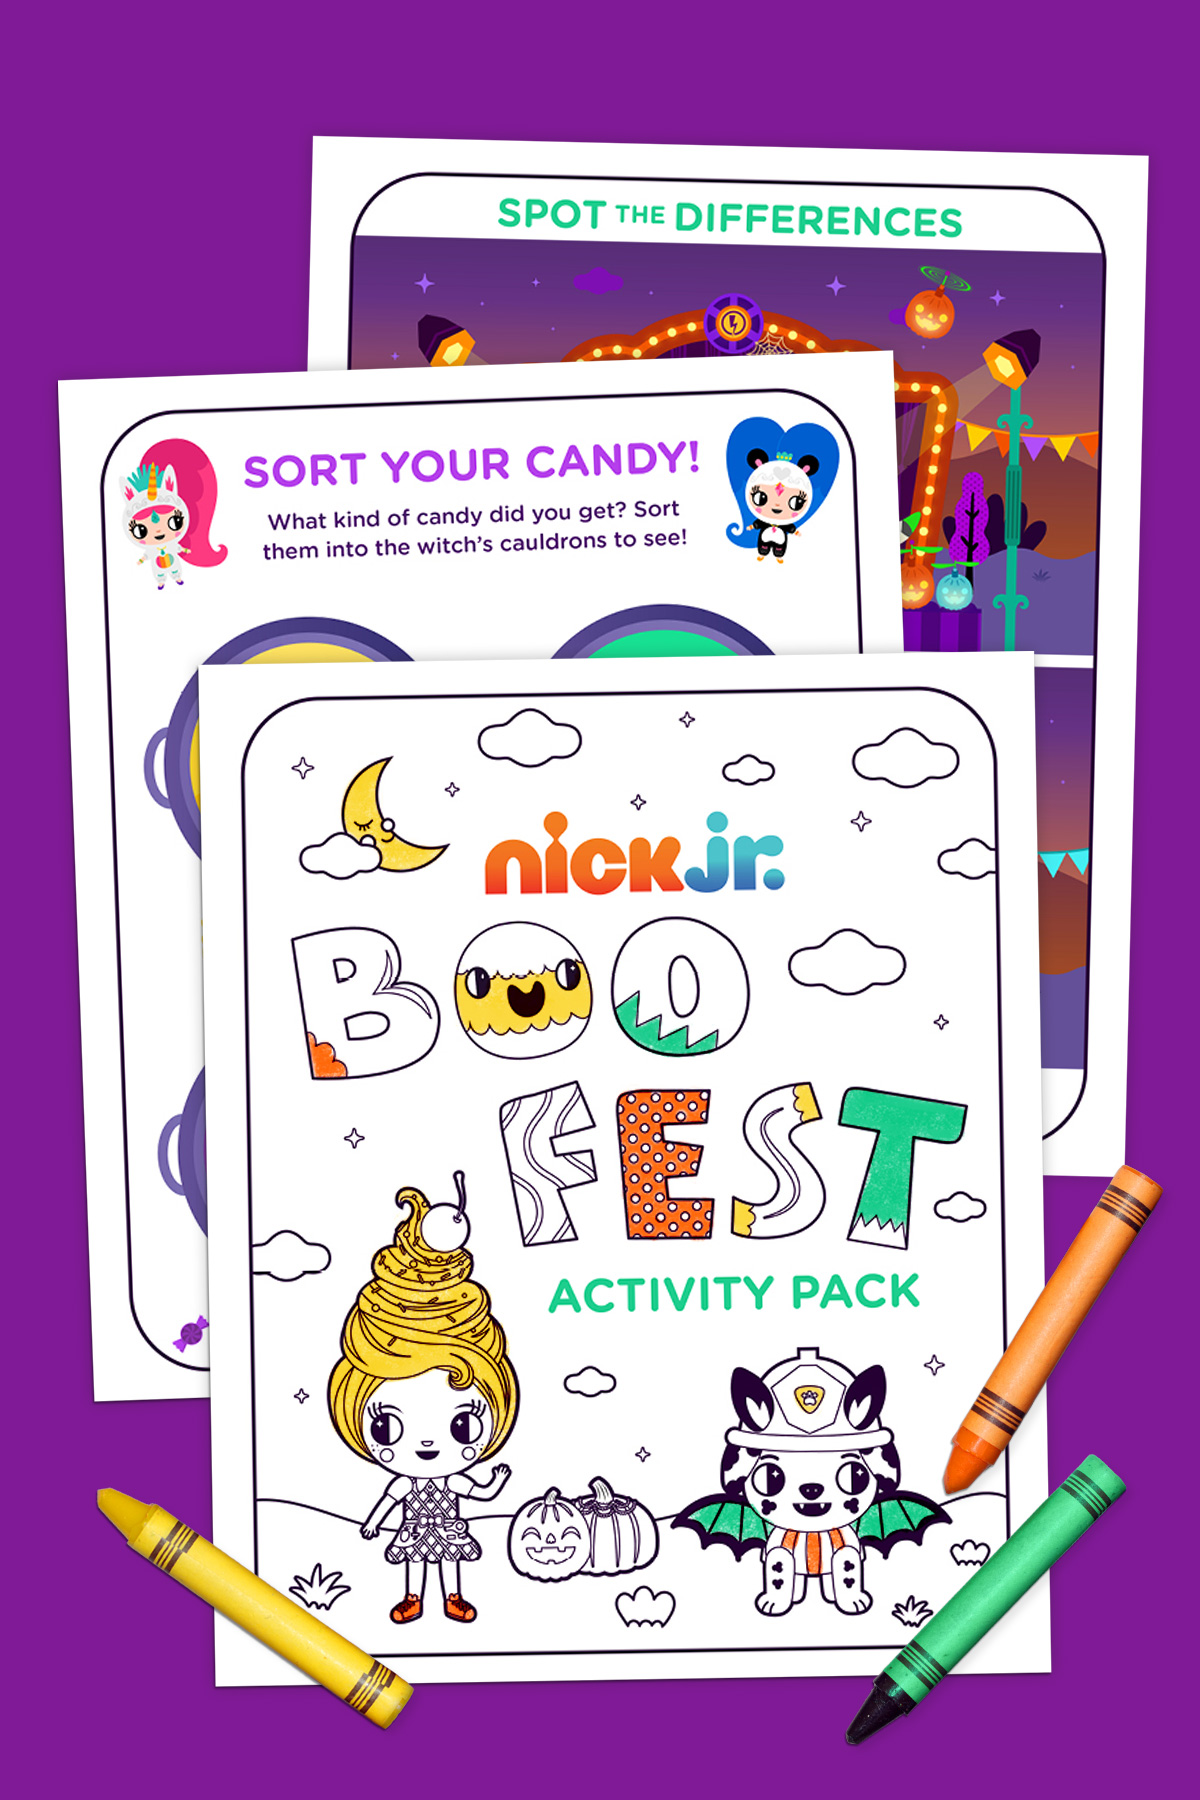 Nick Jr Boo Fest Activity Pack